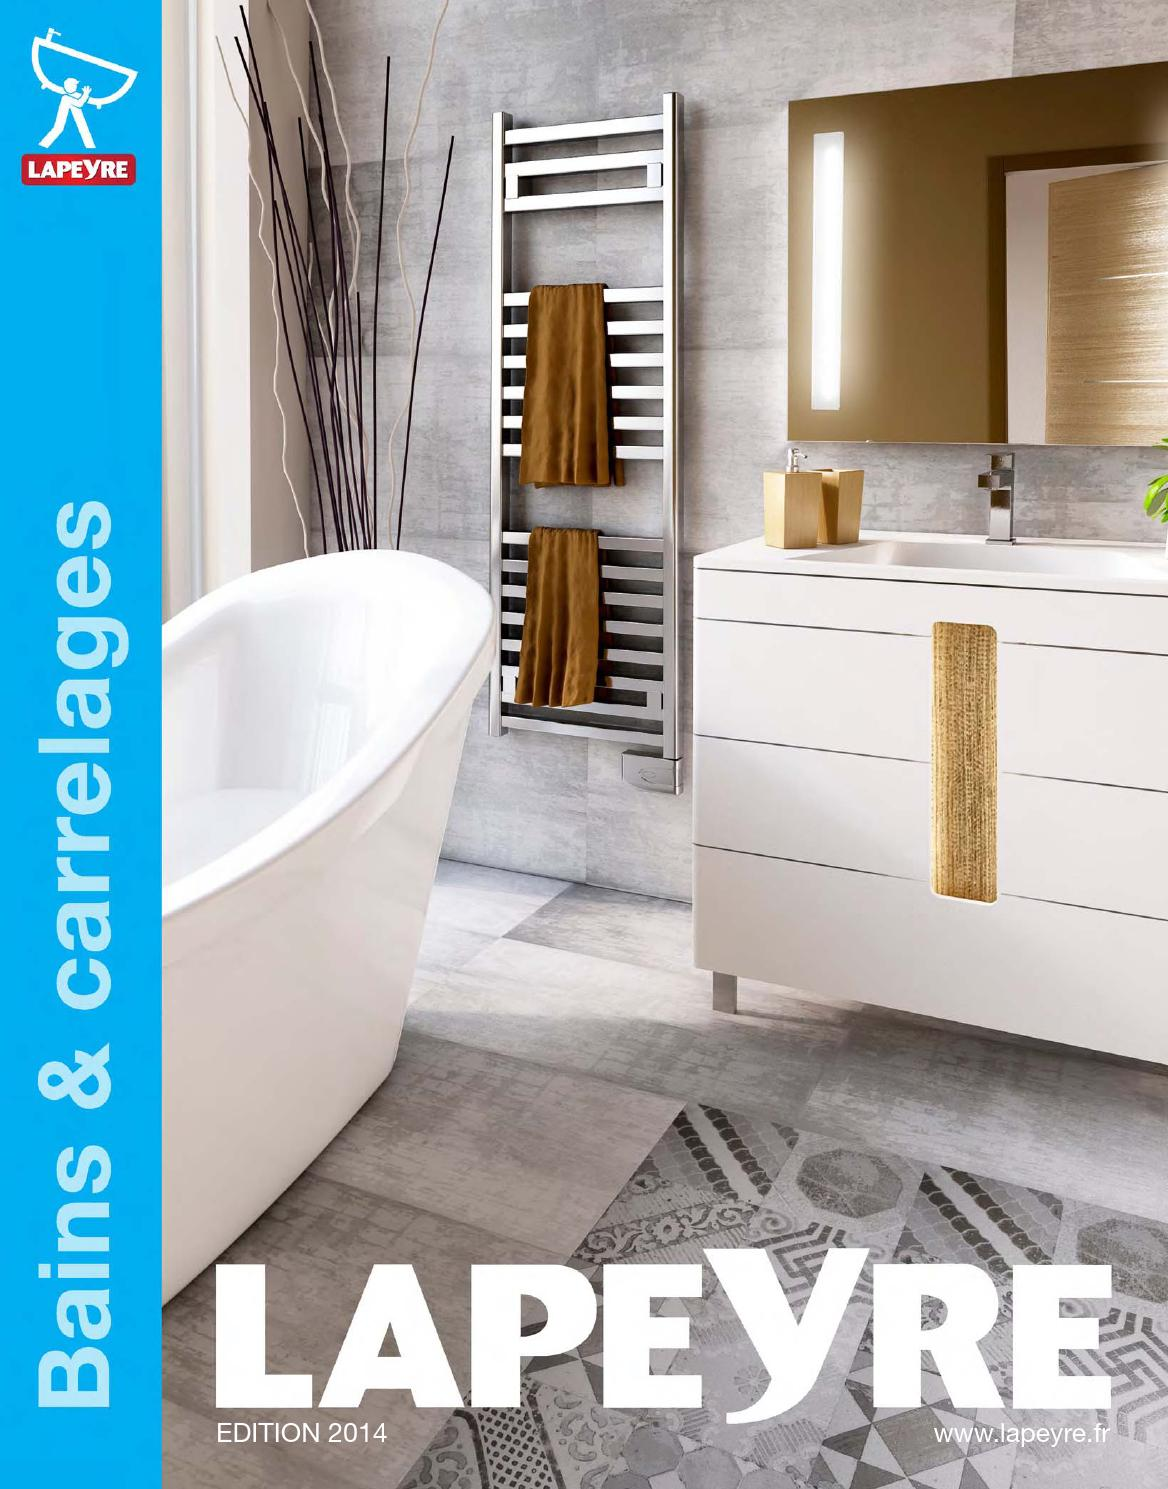 Catalogue Lapeyre - Bains & Carrelages 19 by joe monroe - issuu